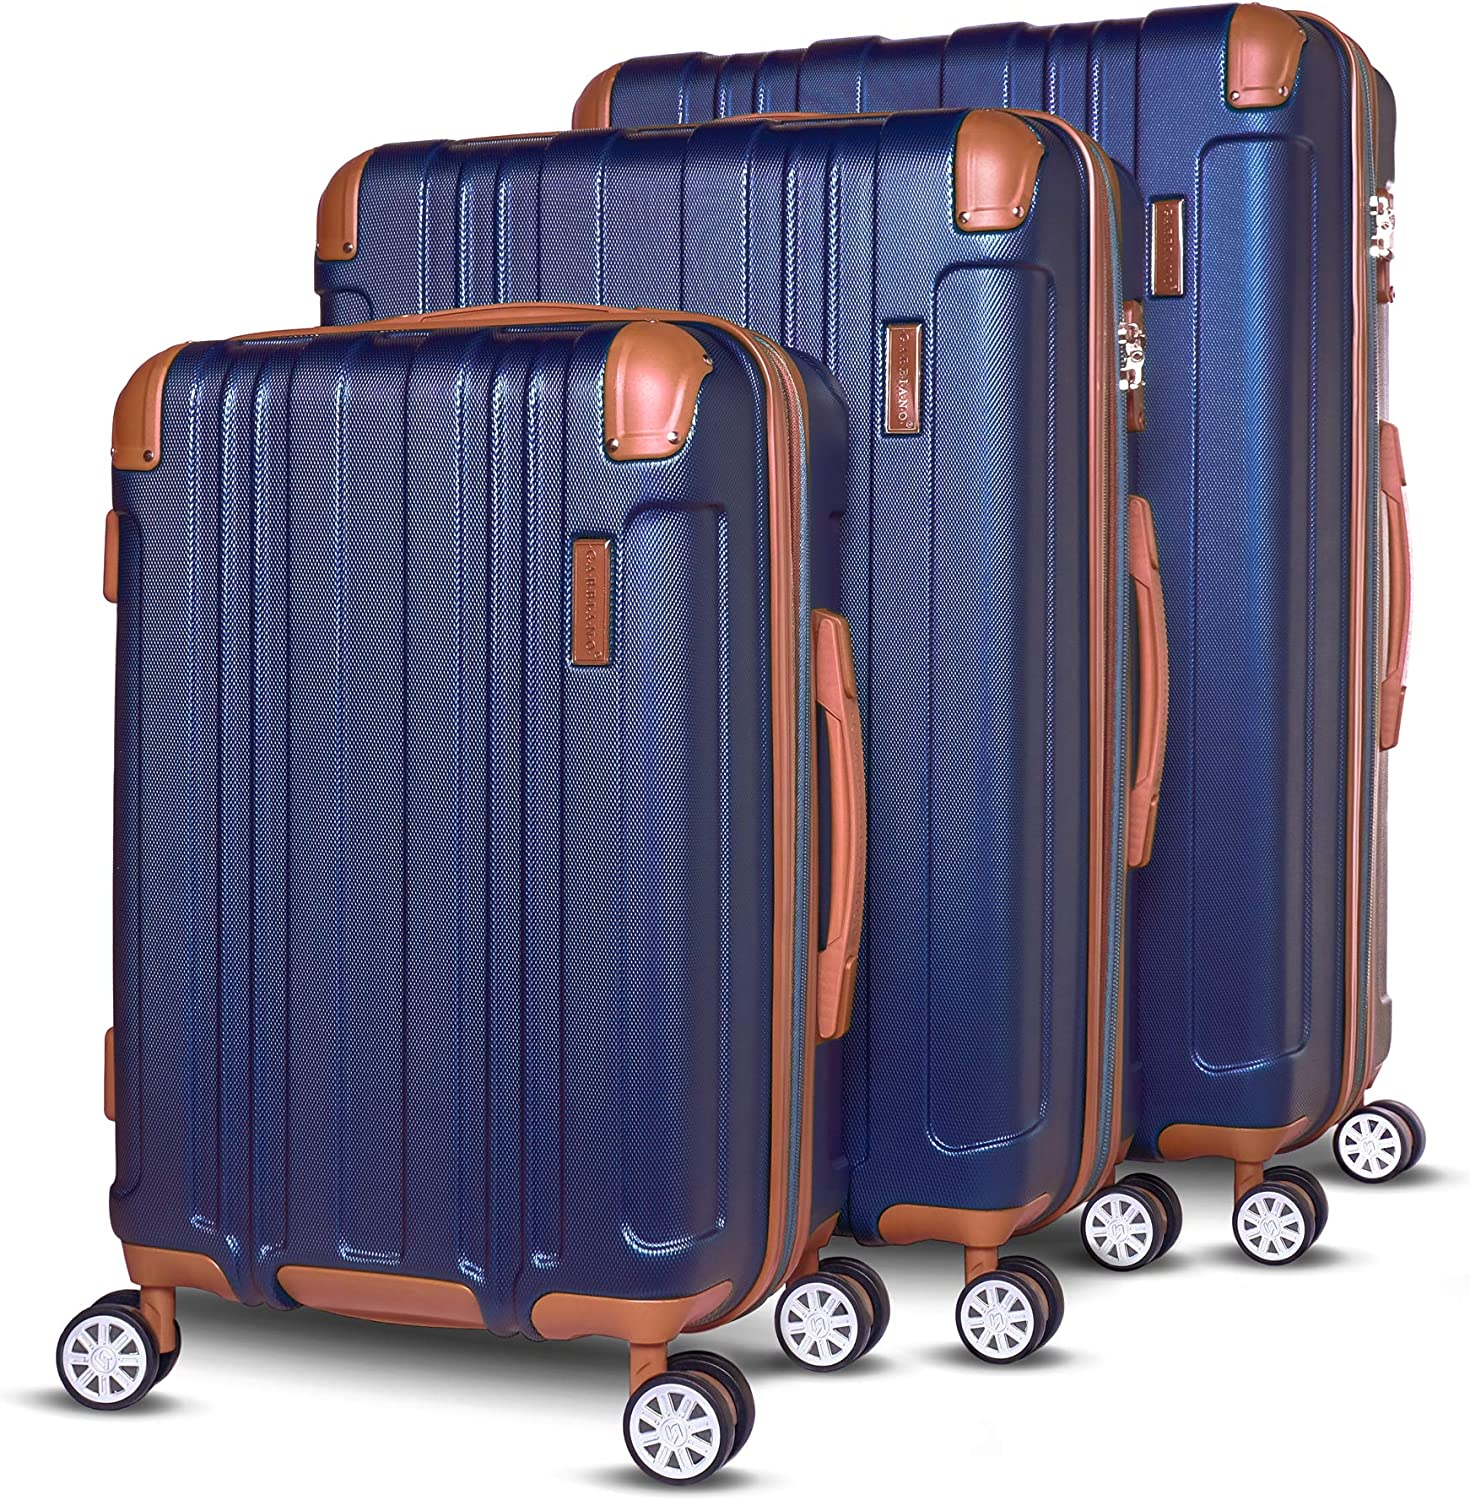 Gabbiano Bravo Collection 3 Piece Hardside Spinner Luggage Set Blue